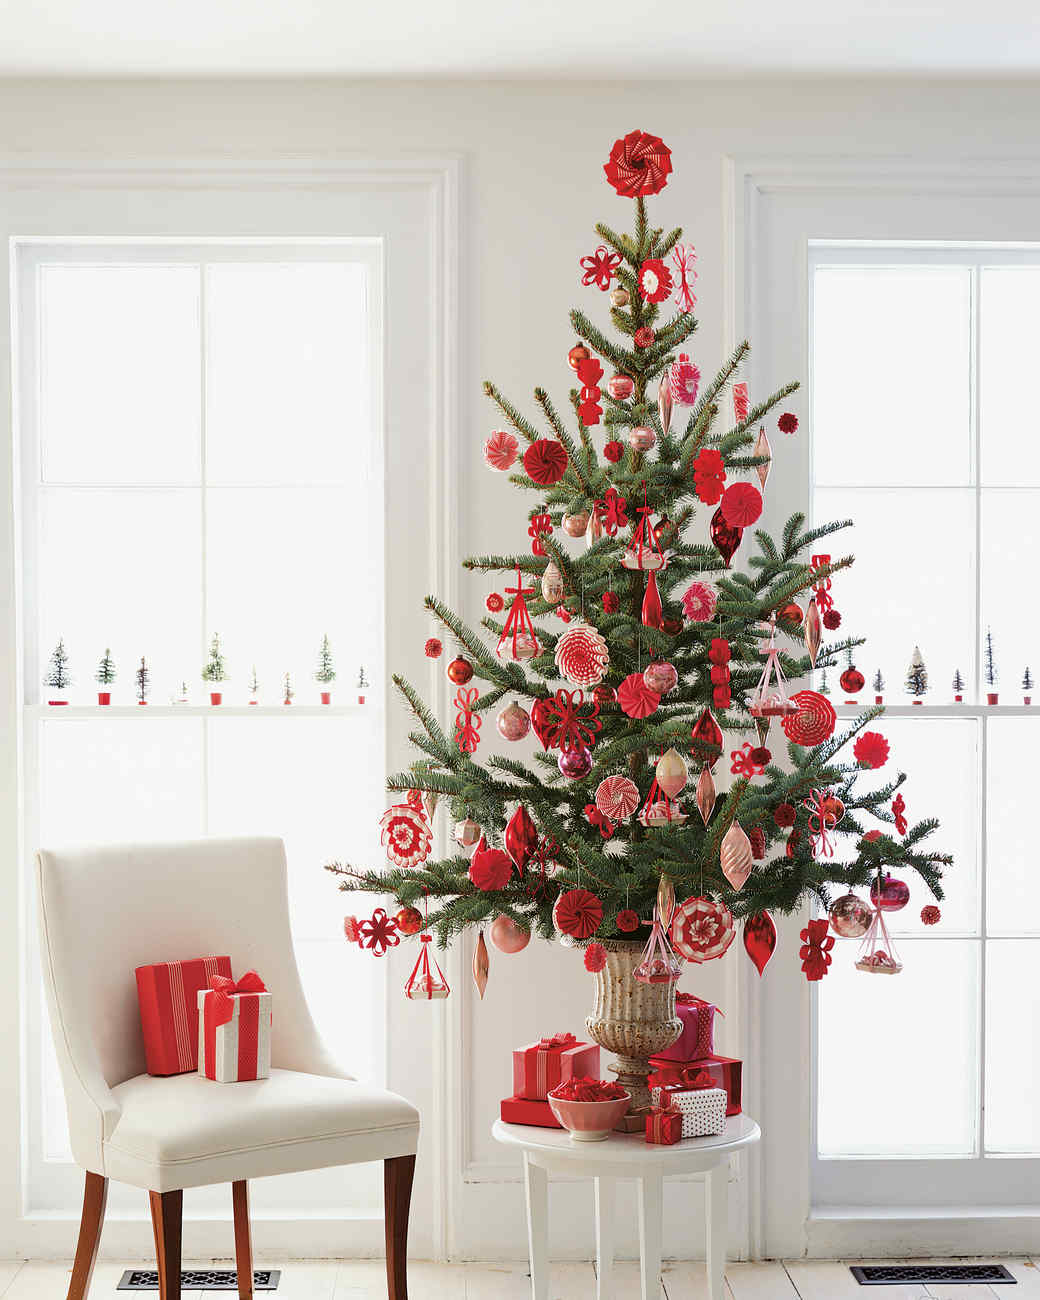 28 creative christmas tree decorating ideas martha stewart - Themed Christmas Tree Decorating Kits